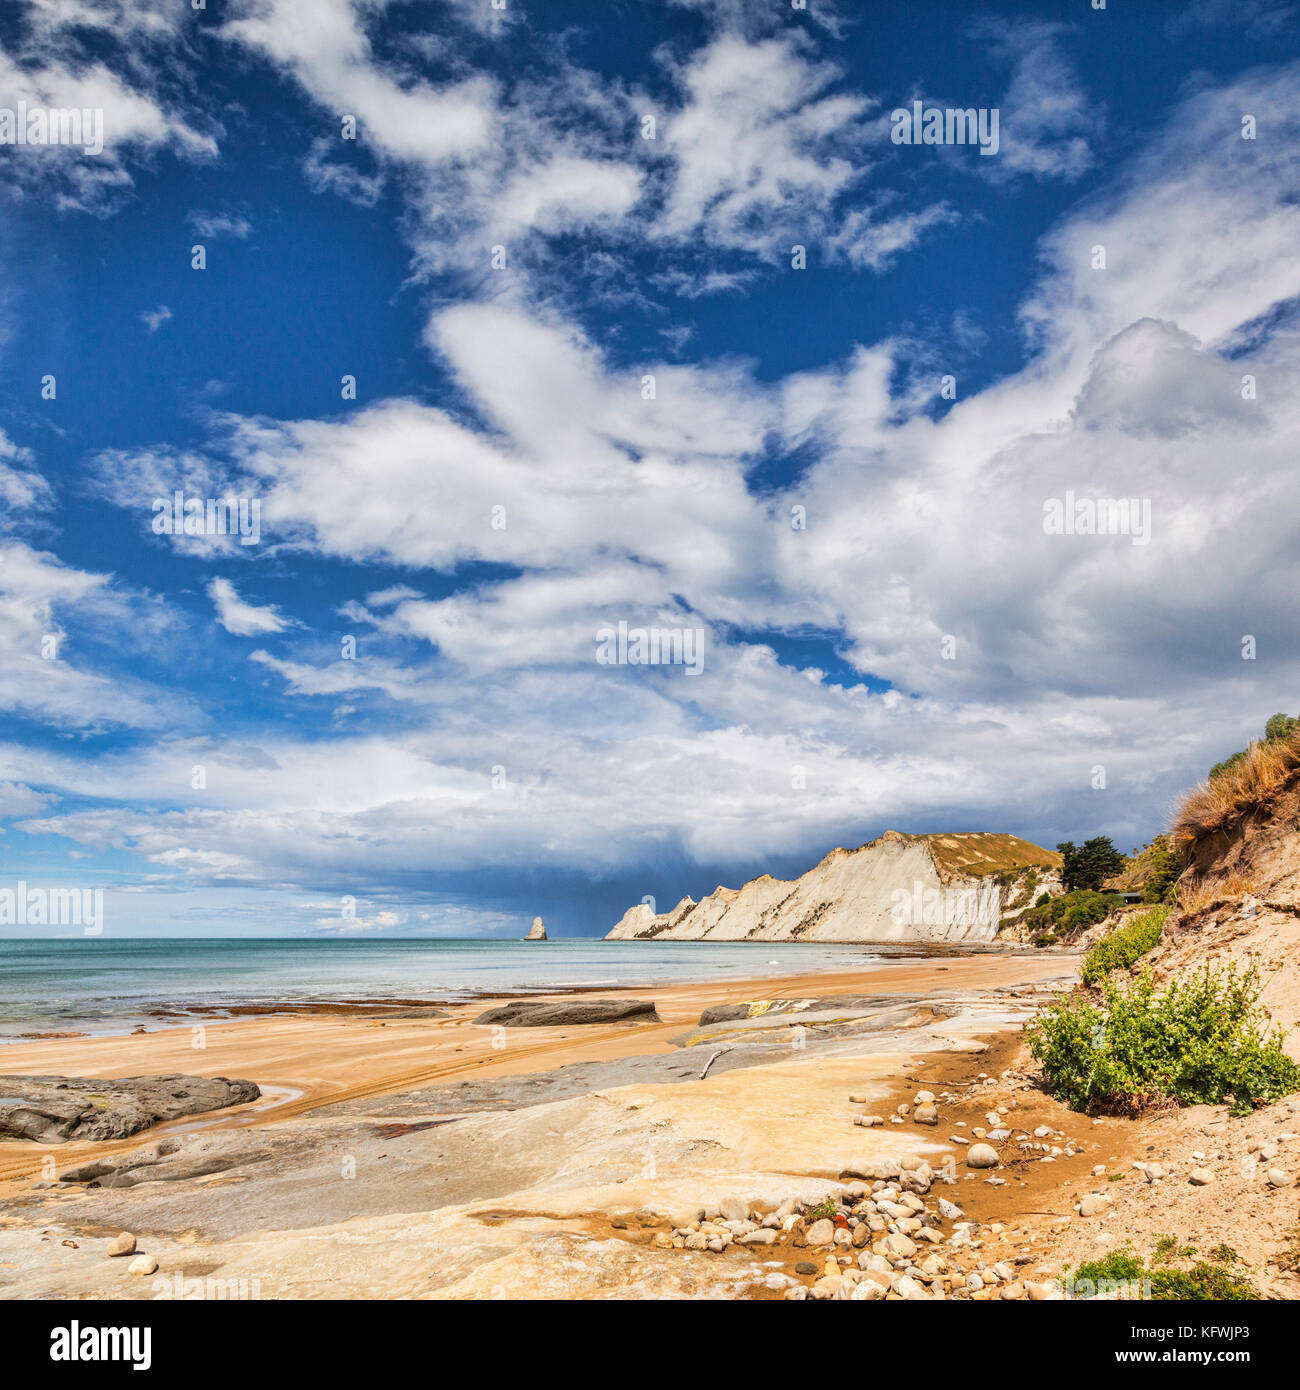 The dramatic scenery of Cape Kidnappers, Hawkes Bay, New Zealand. - Stock Image